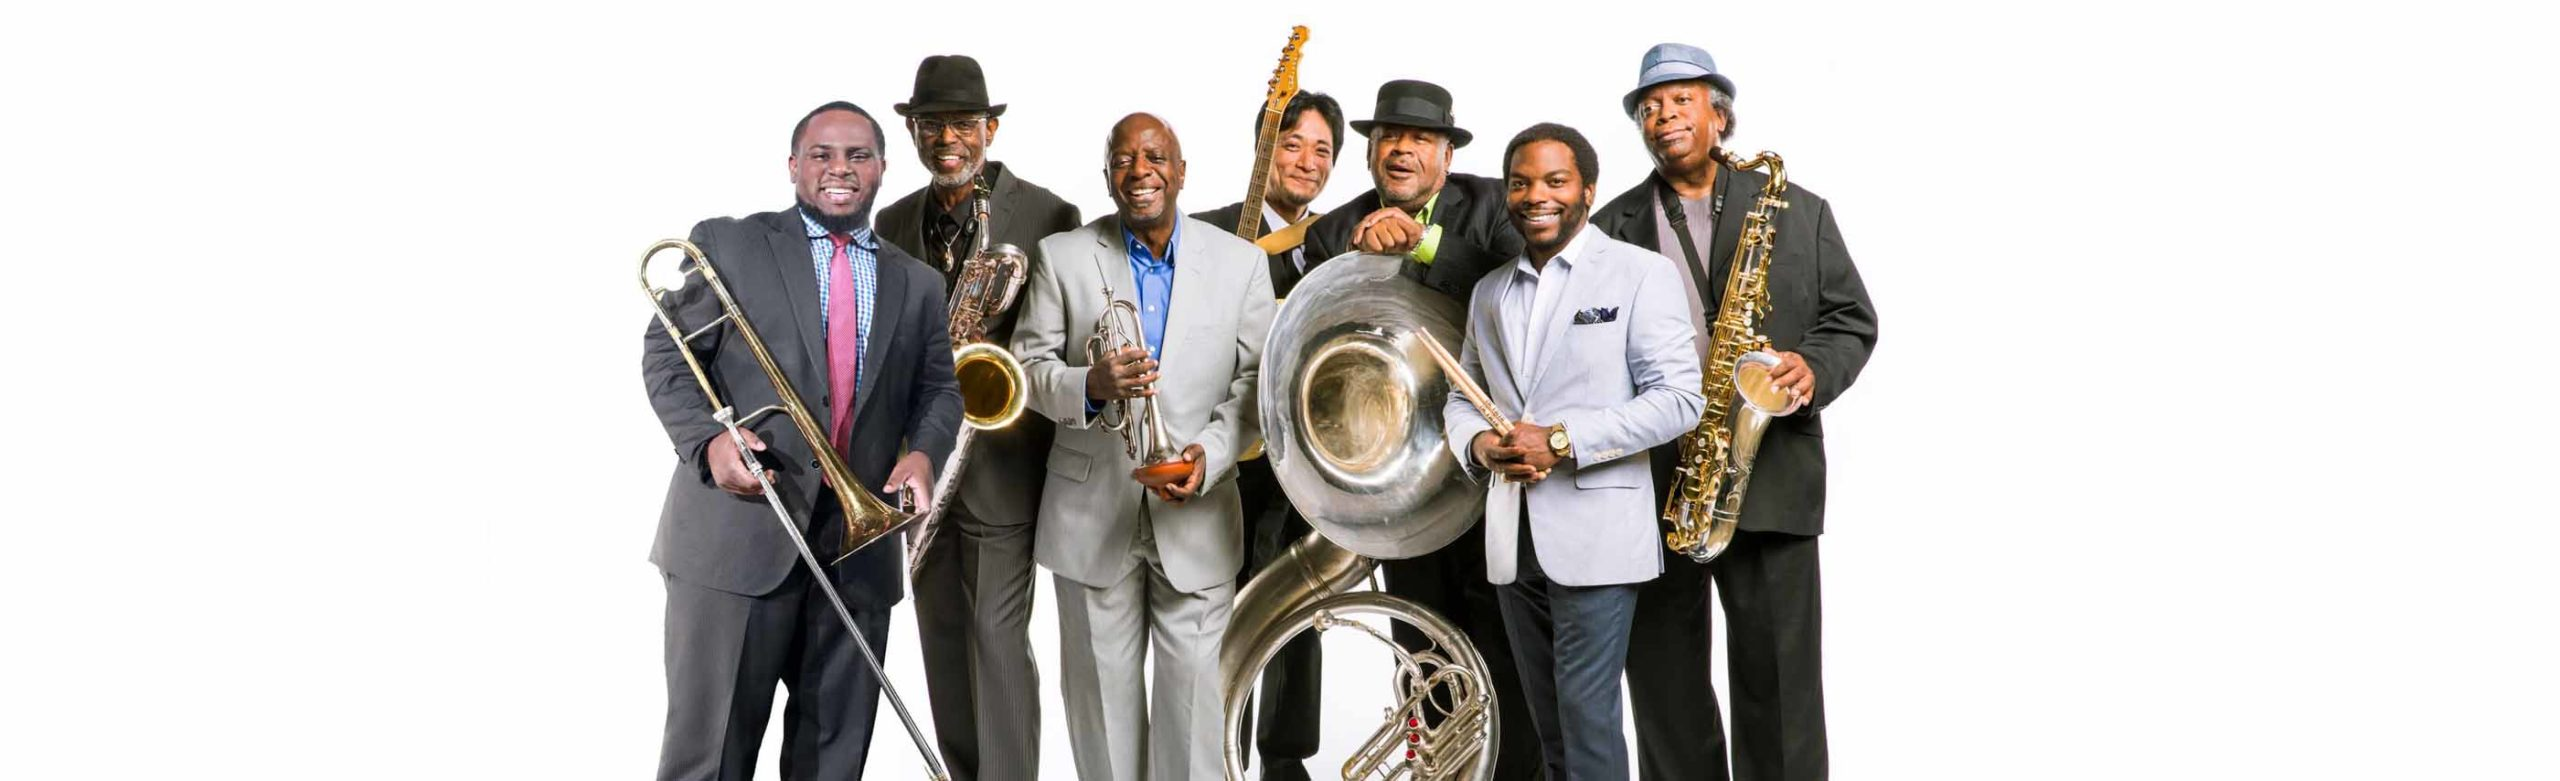 JUST ANNOUNCED: New Orleans' Dirty Dozen Brass Band Returns to Missoula Image